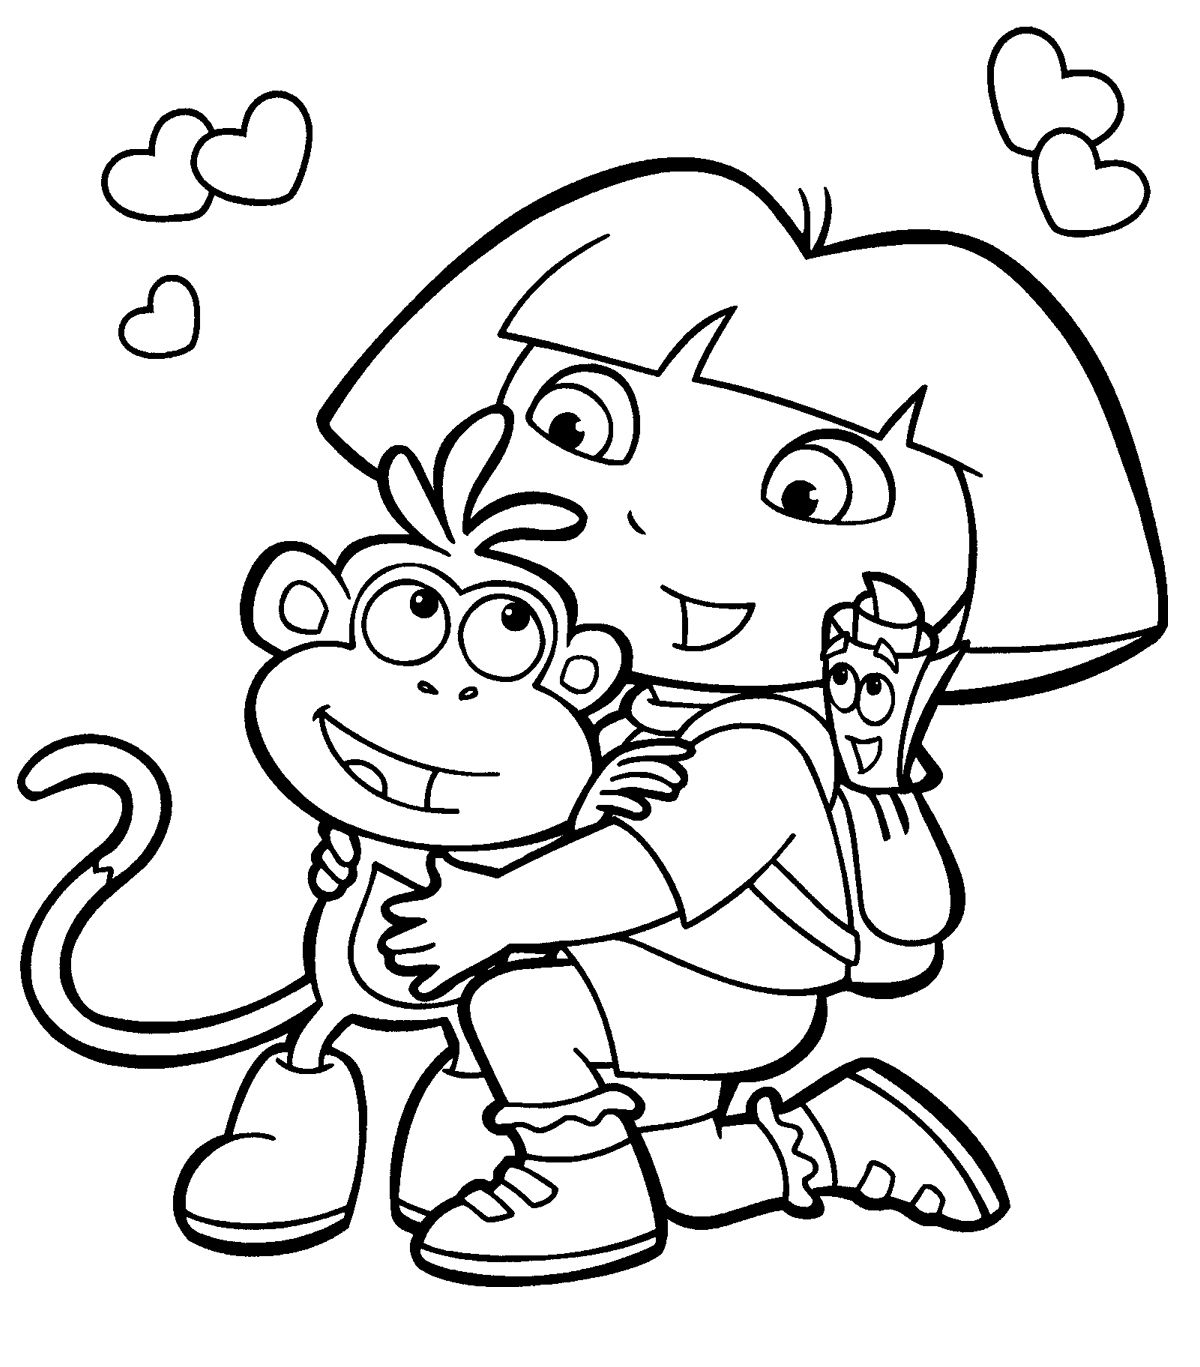 dora printable coloring pages free princess dora the explorer coloring pages dora coloring printable coloring free dora pages